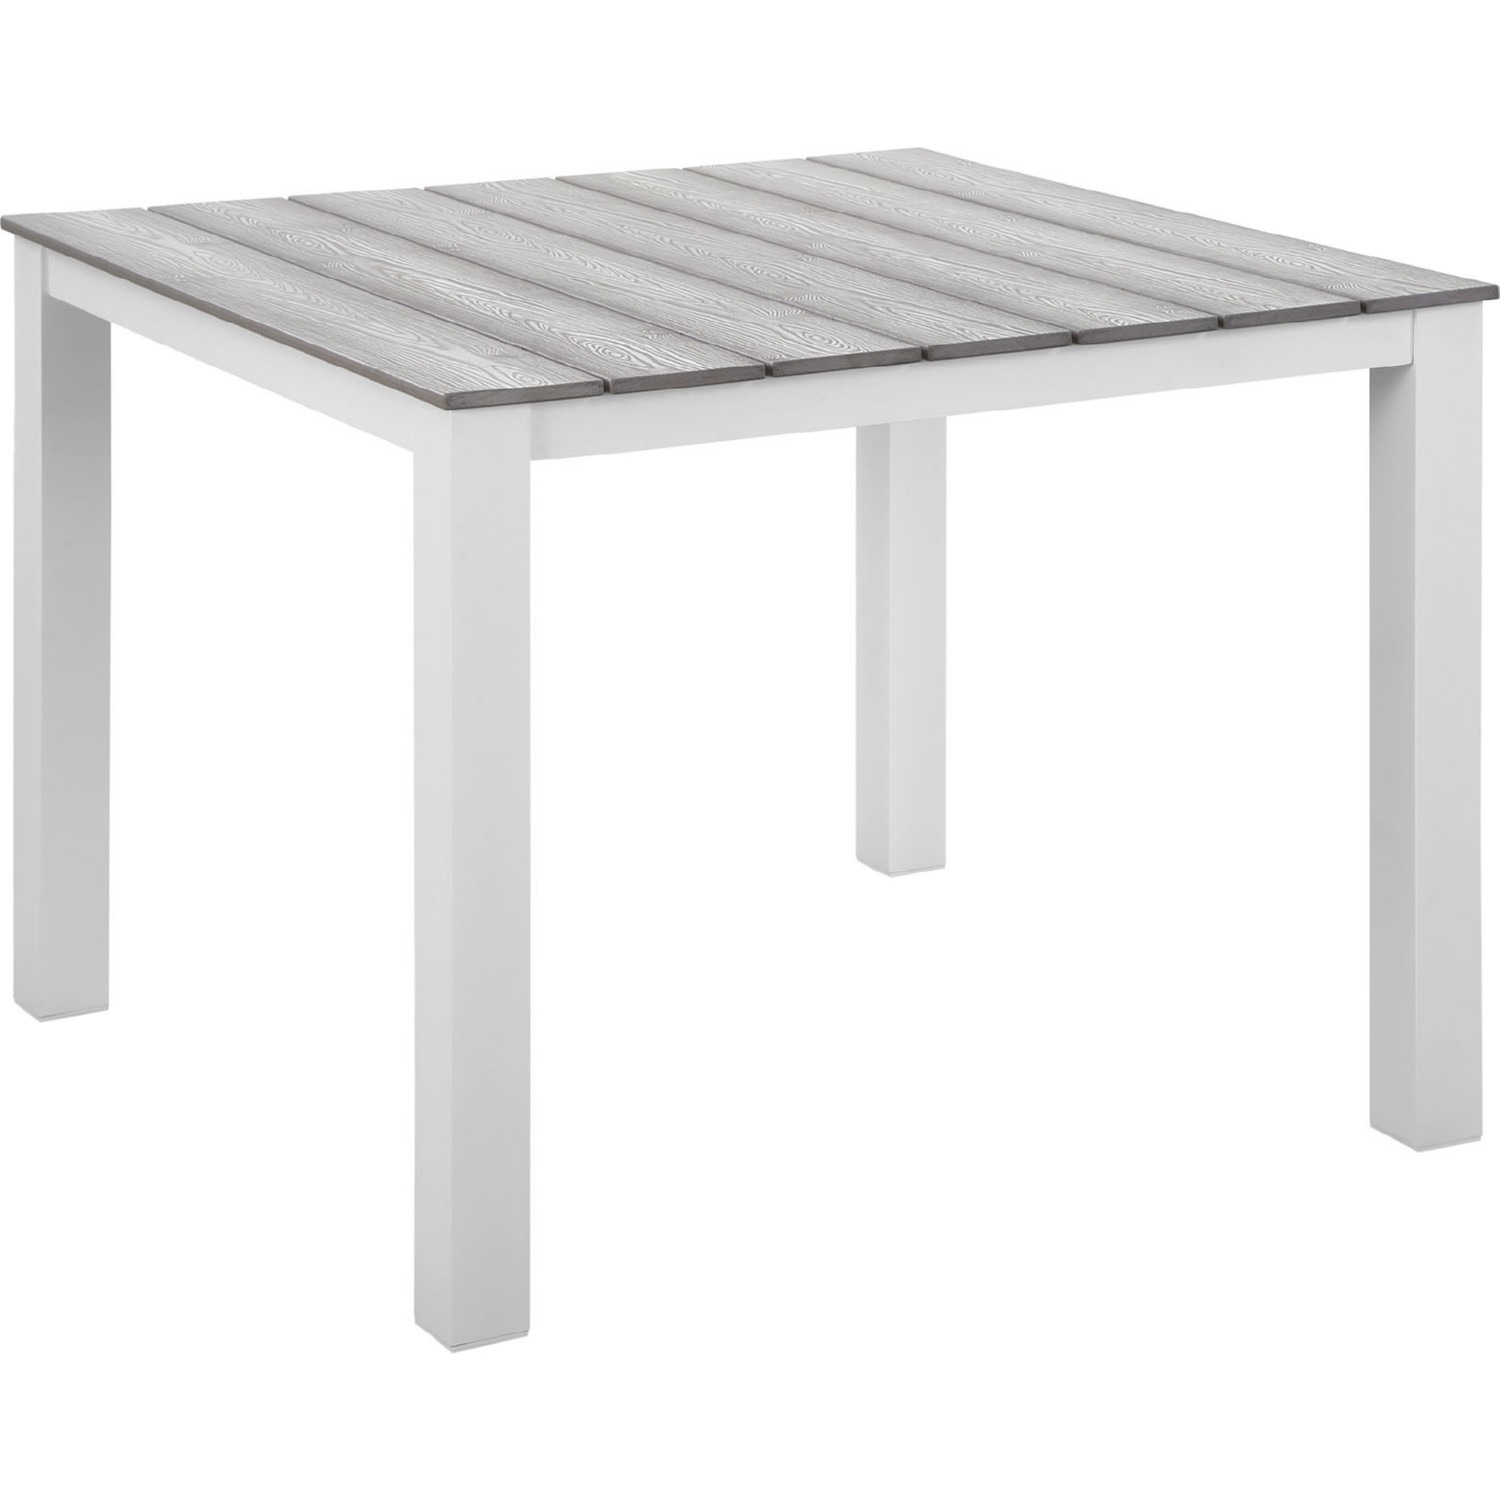 Modern 3-Piece Dining Set In White & Gray - image-4